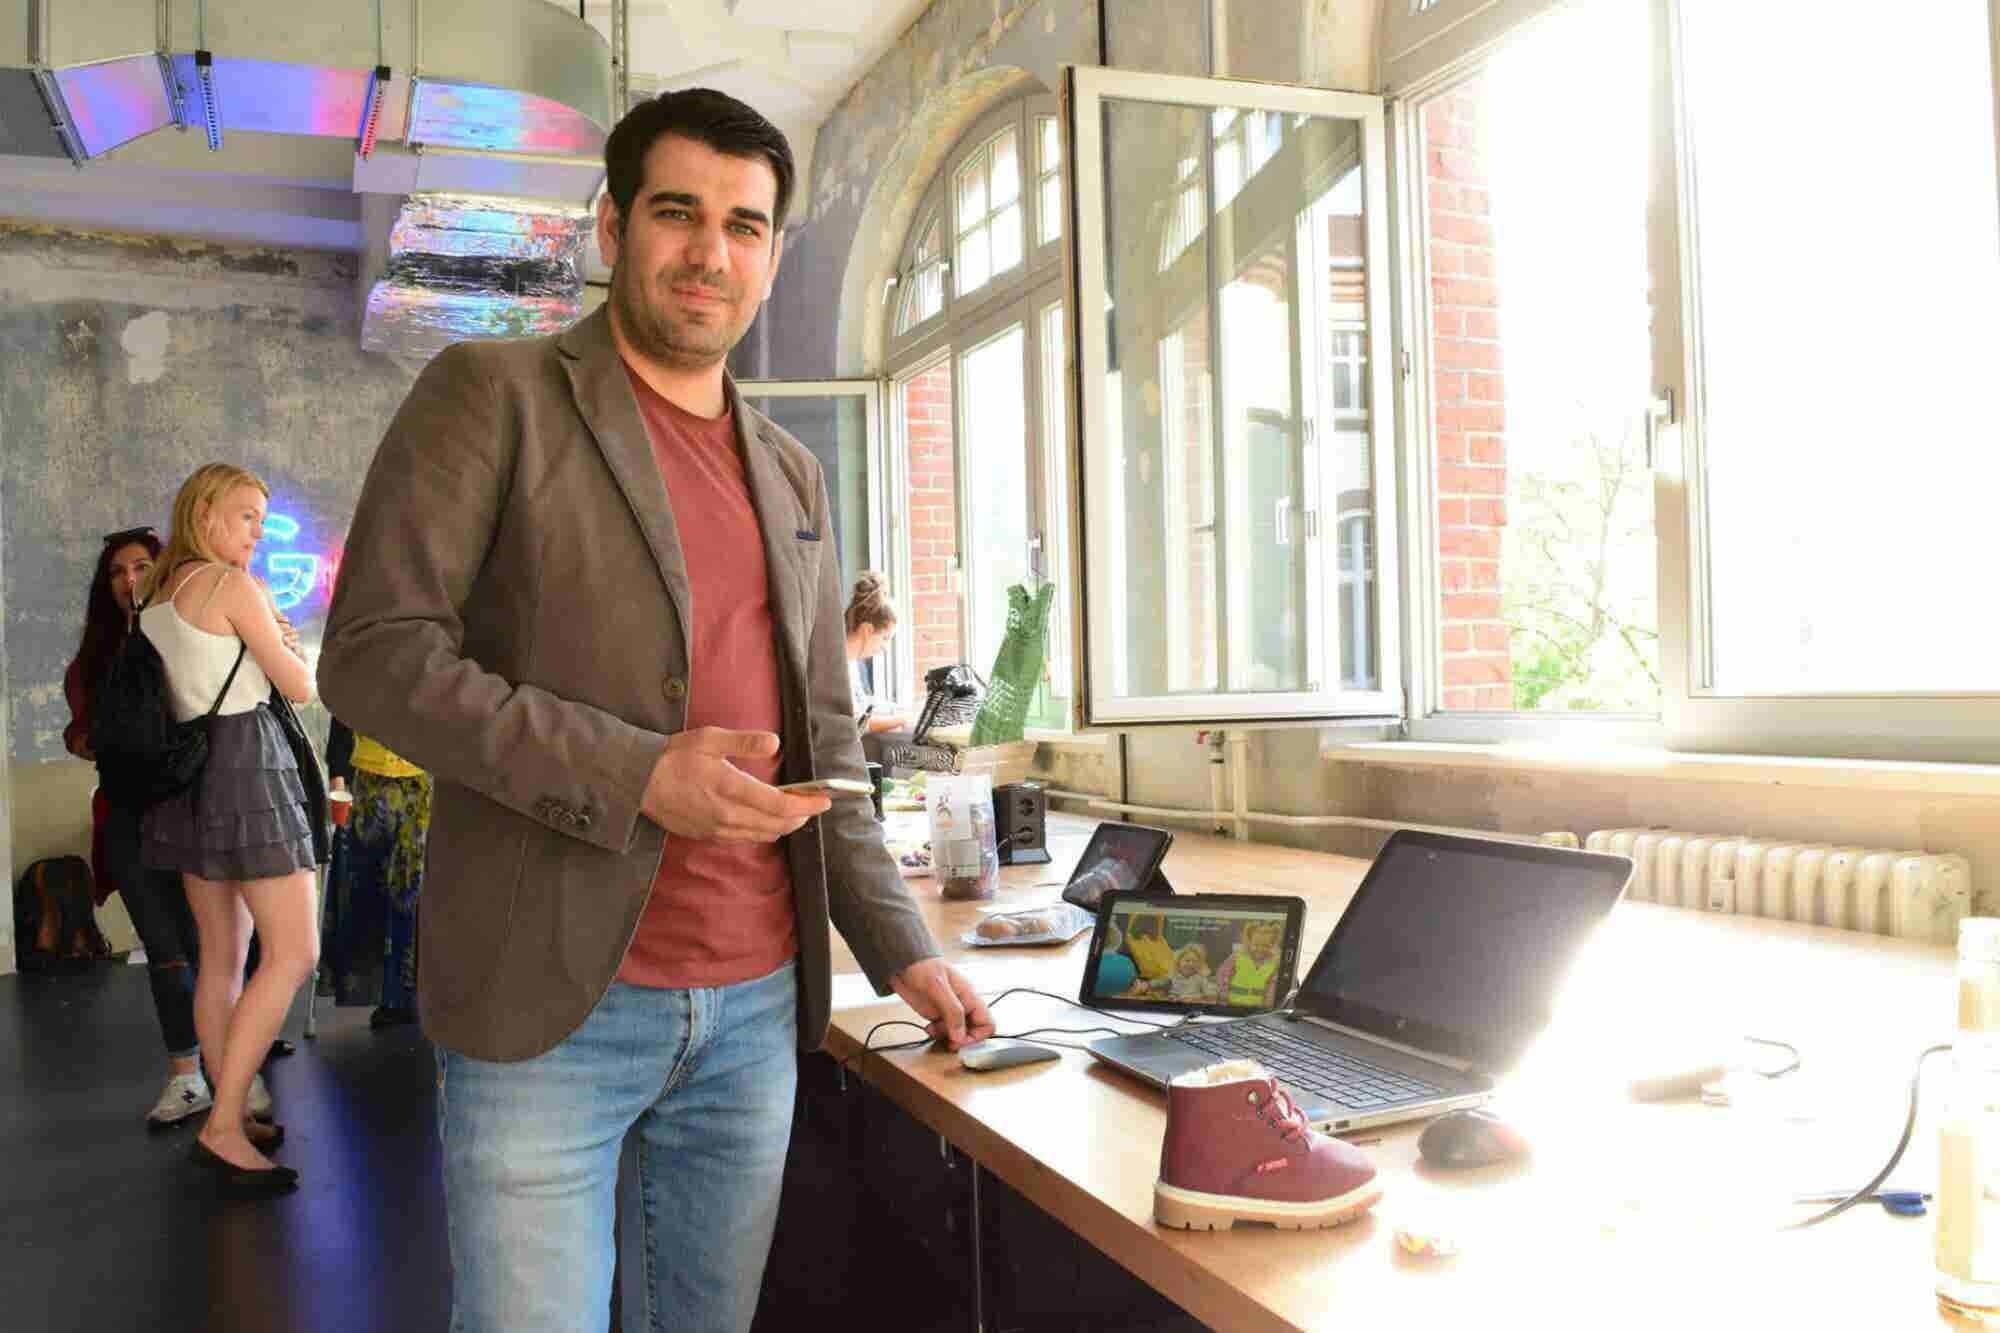 Wearables For Kids: Syrian Entrepreneur Raafat Hantoush, Co-Founder, Bote, Can Help You Track Your Children